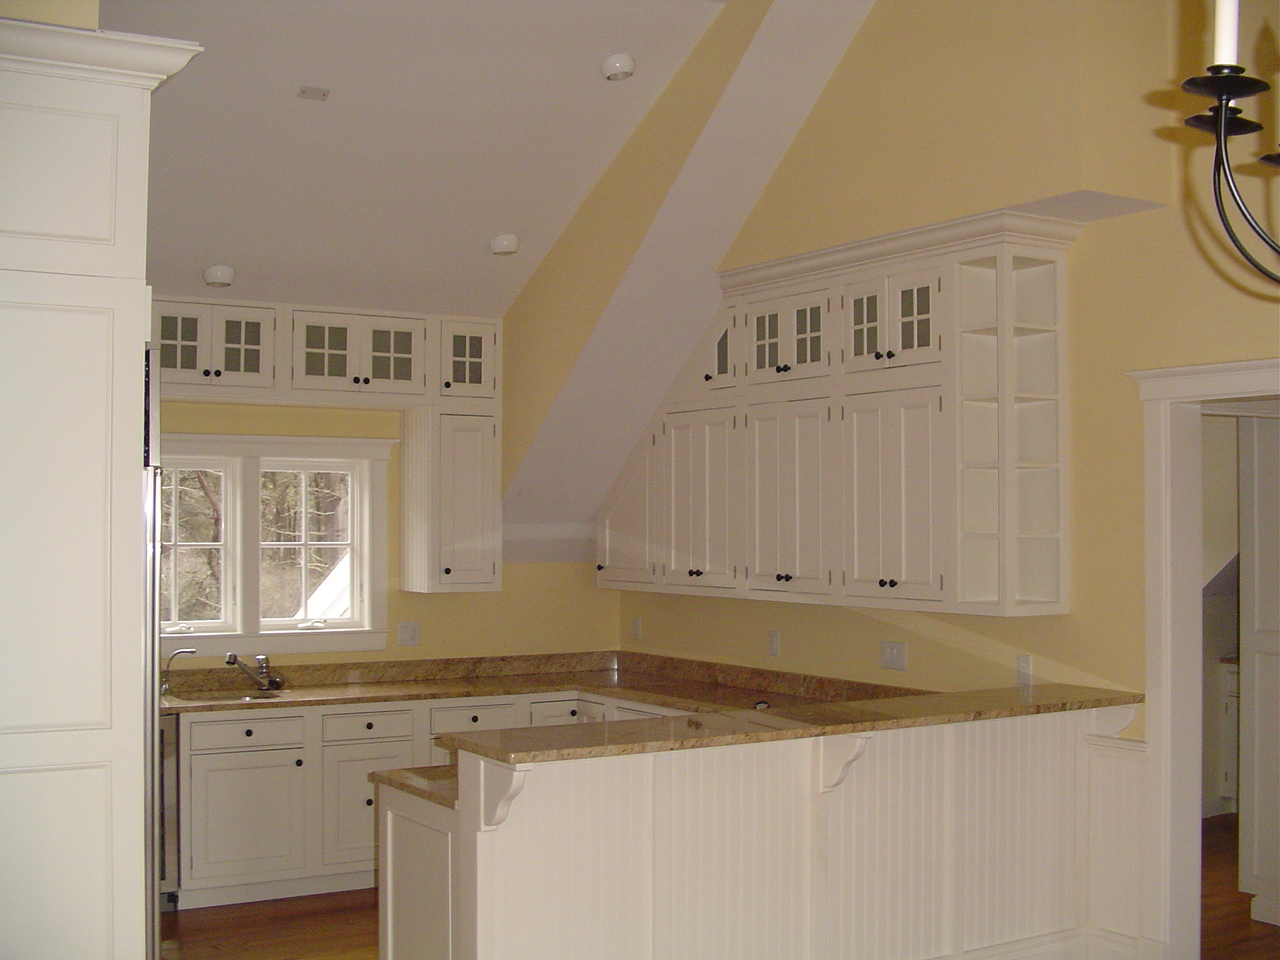 Home design image ideas home interior paint ideas for How to paint my house interior